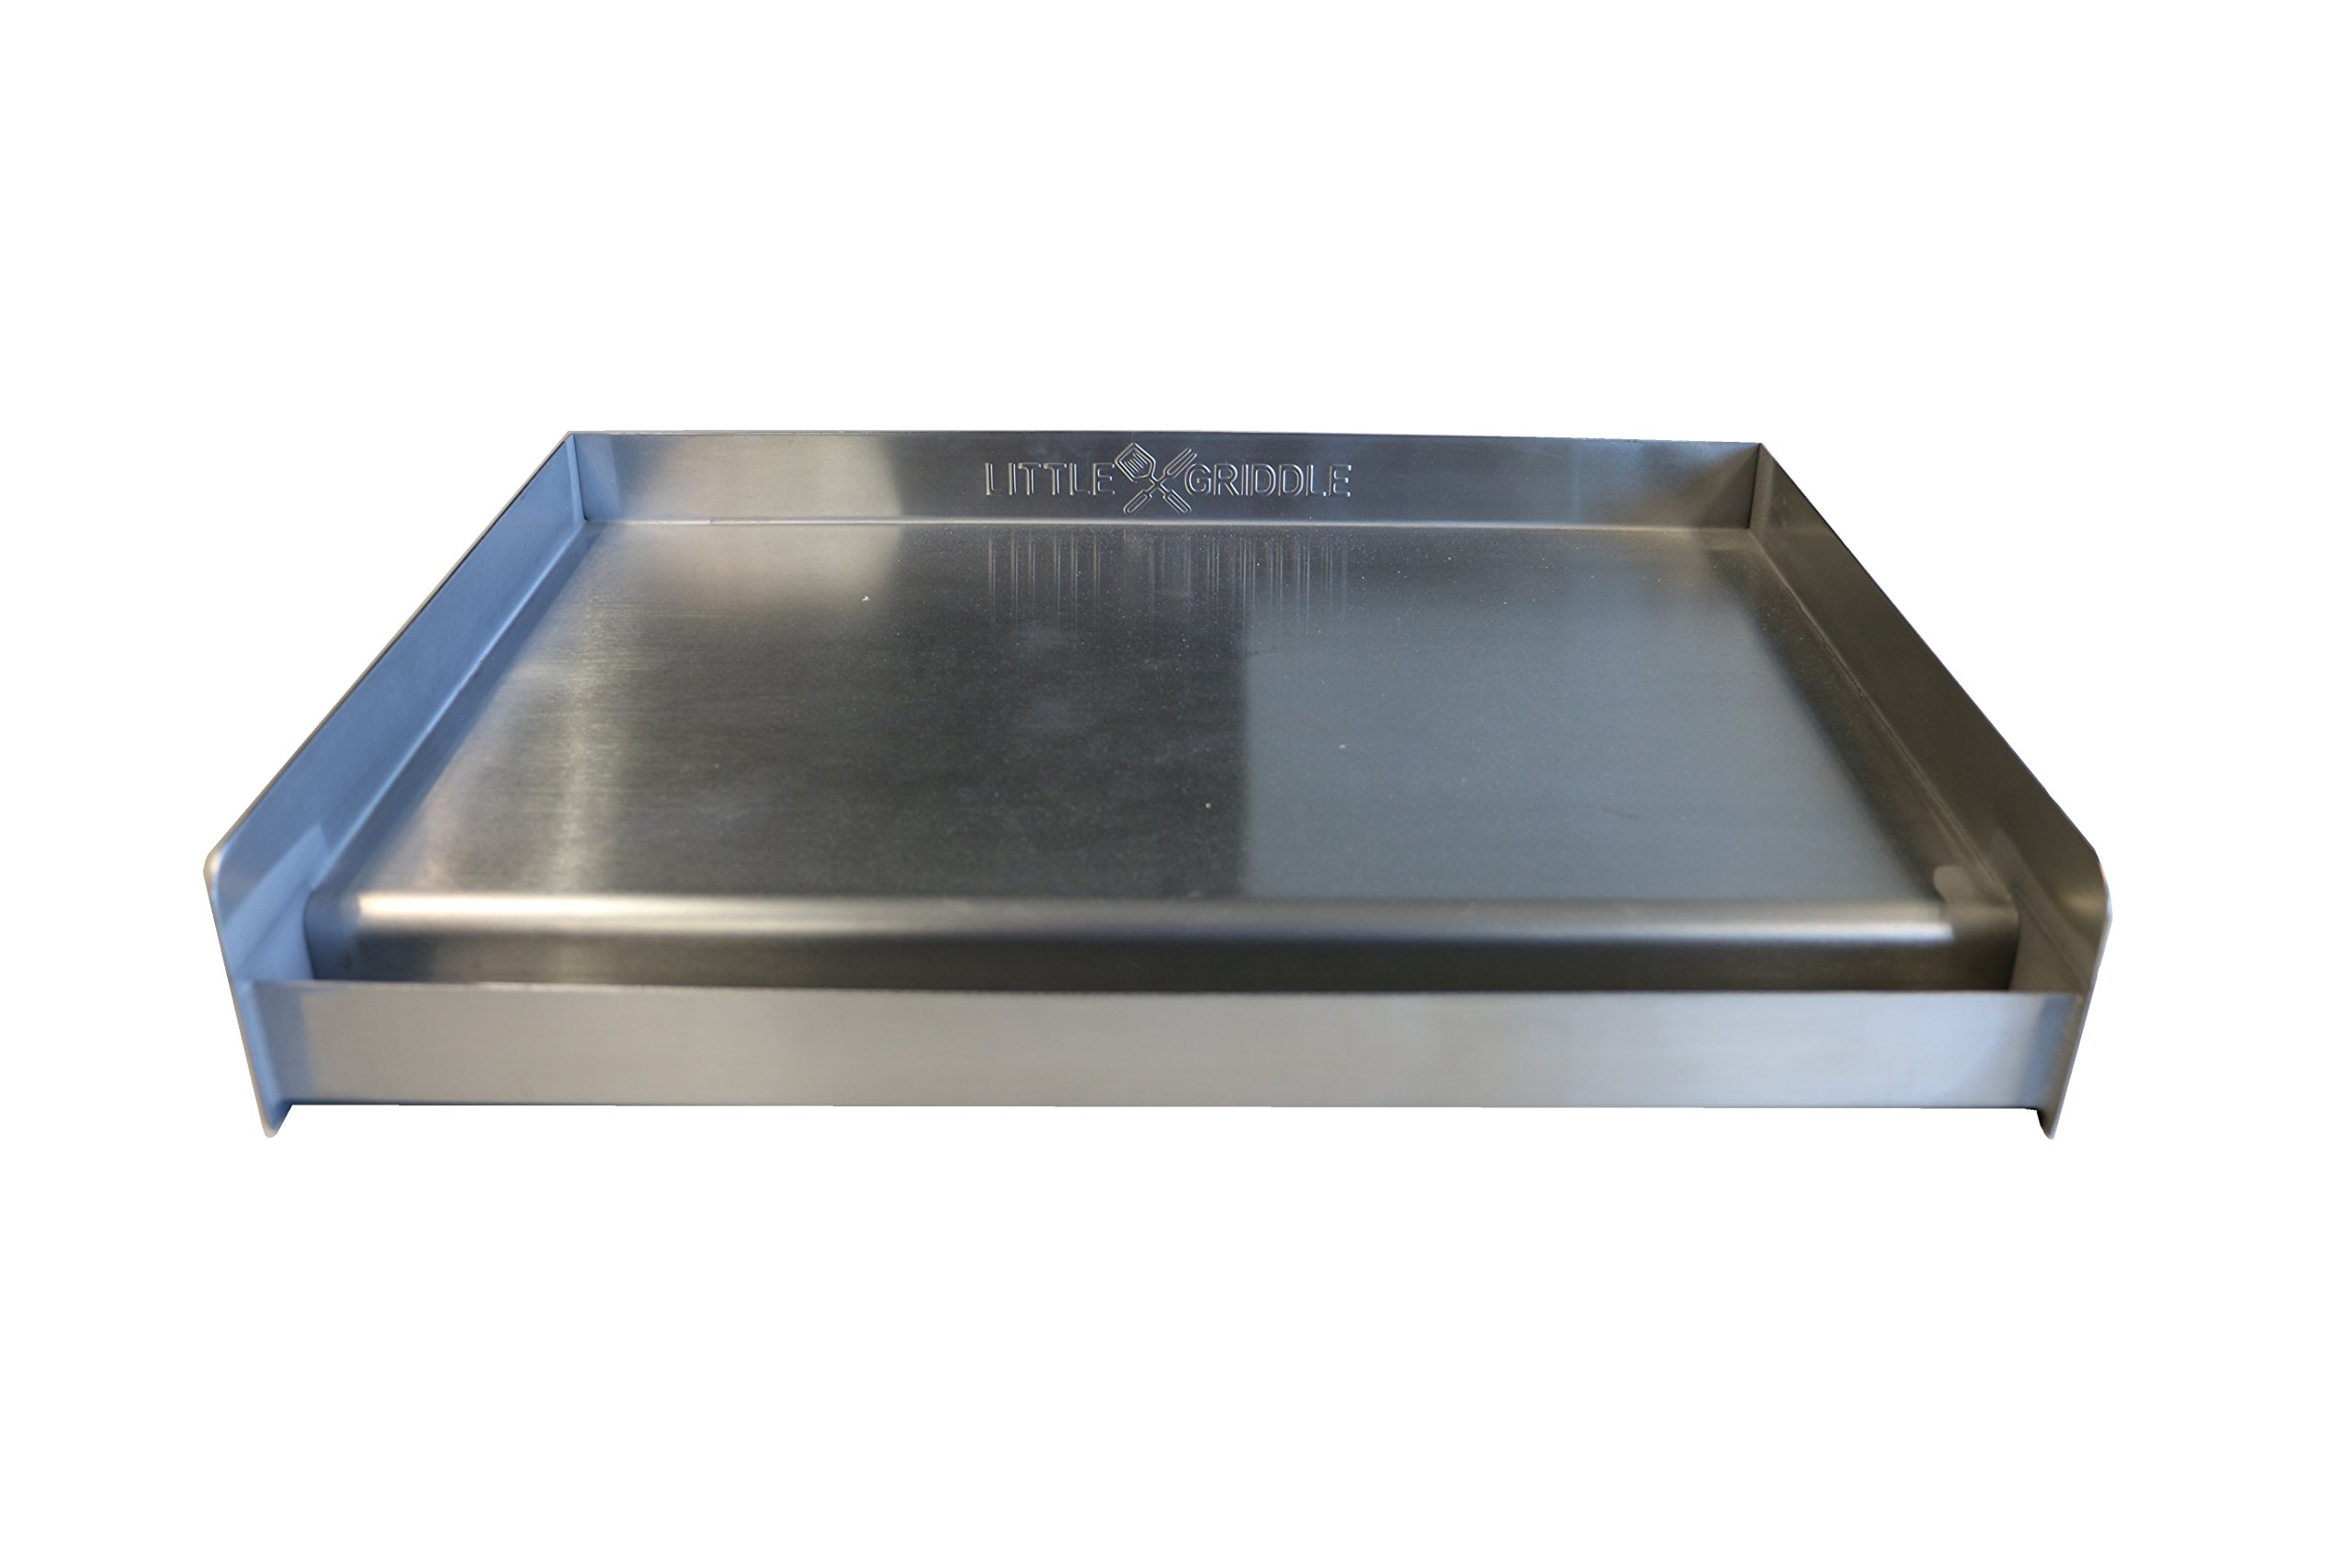 "Sizzle-Q SQ180 100% Stainless Steel Universal Griddle with Even Heating Cross Bracing for Charcoal/Gas Grills, Camping, Tailgating, and Parties (18""x13""x3"")"